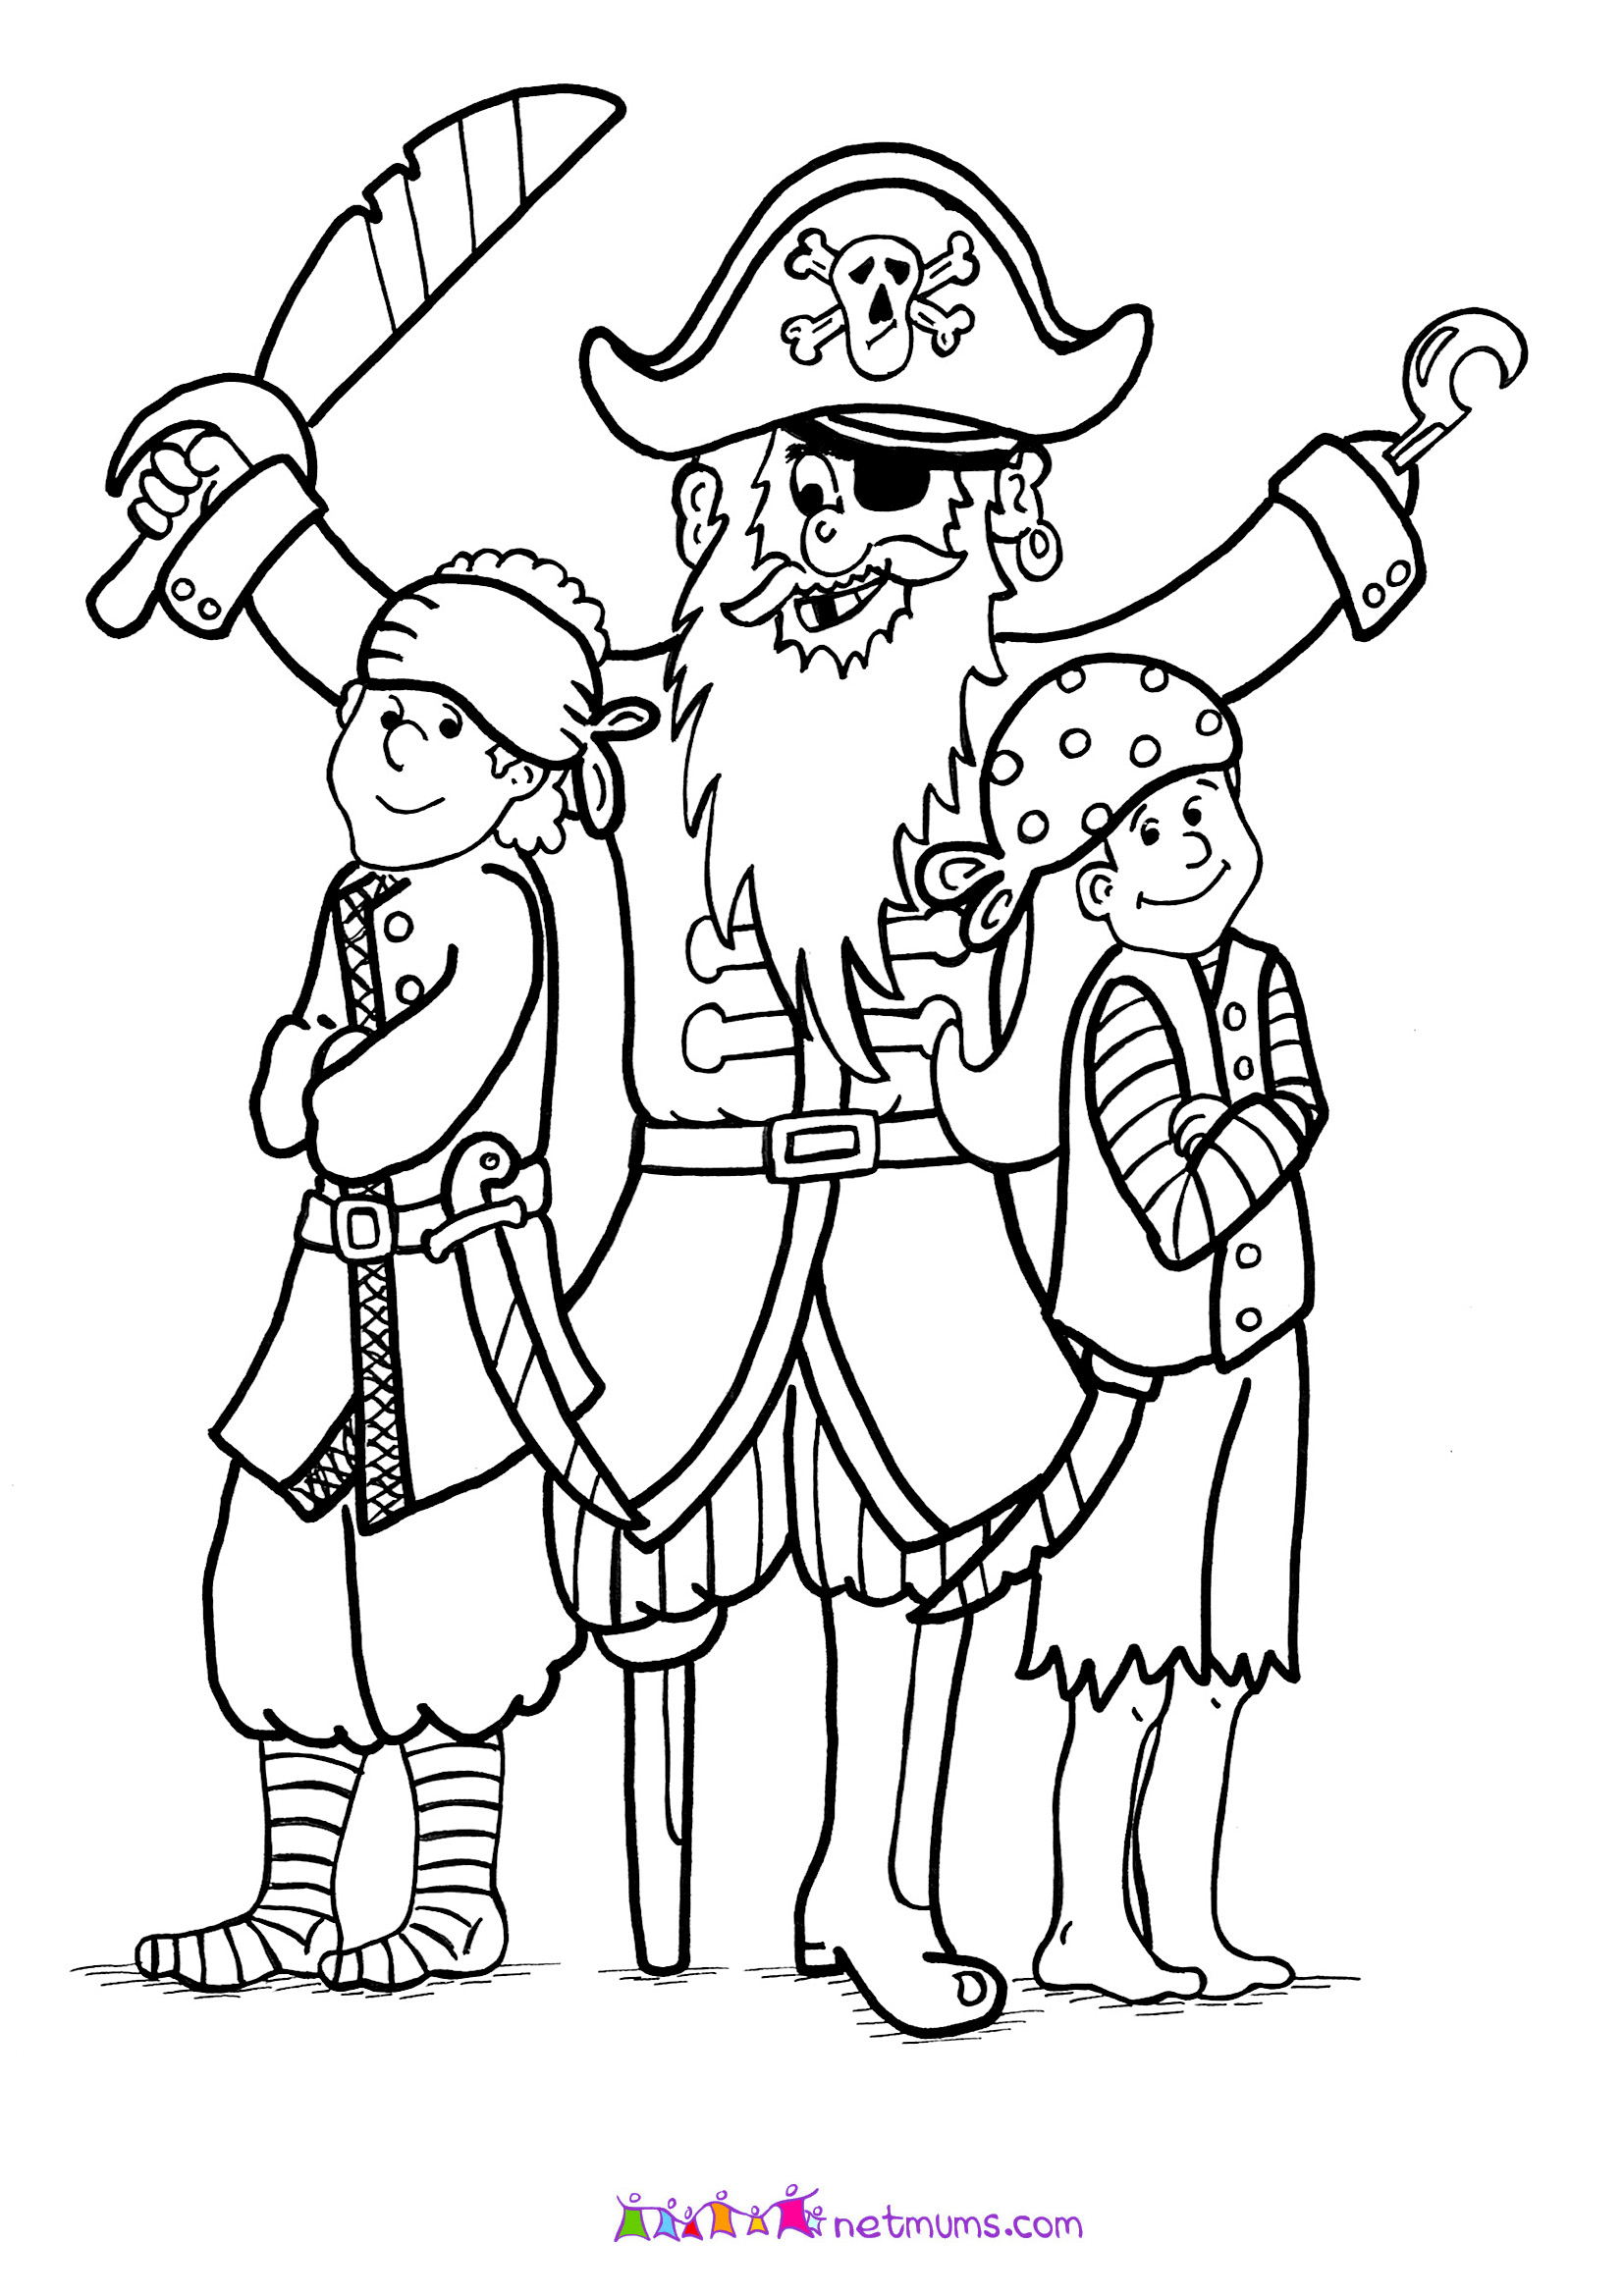 Here are some pirate theme colouring pages for you to